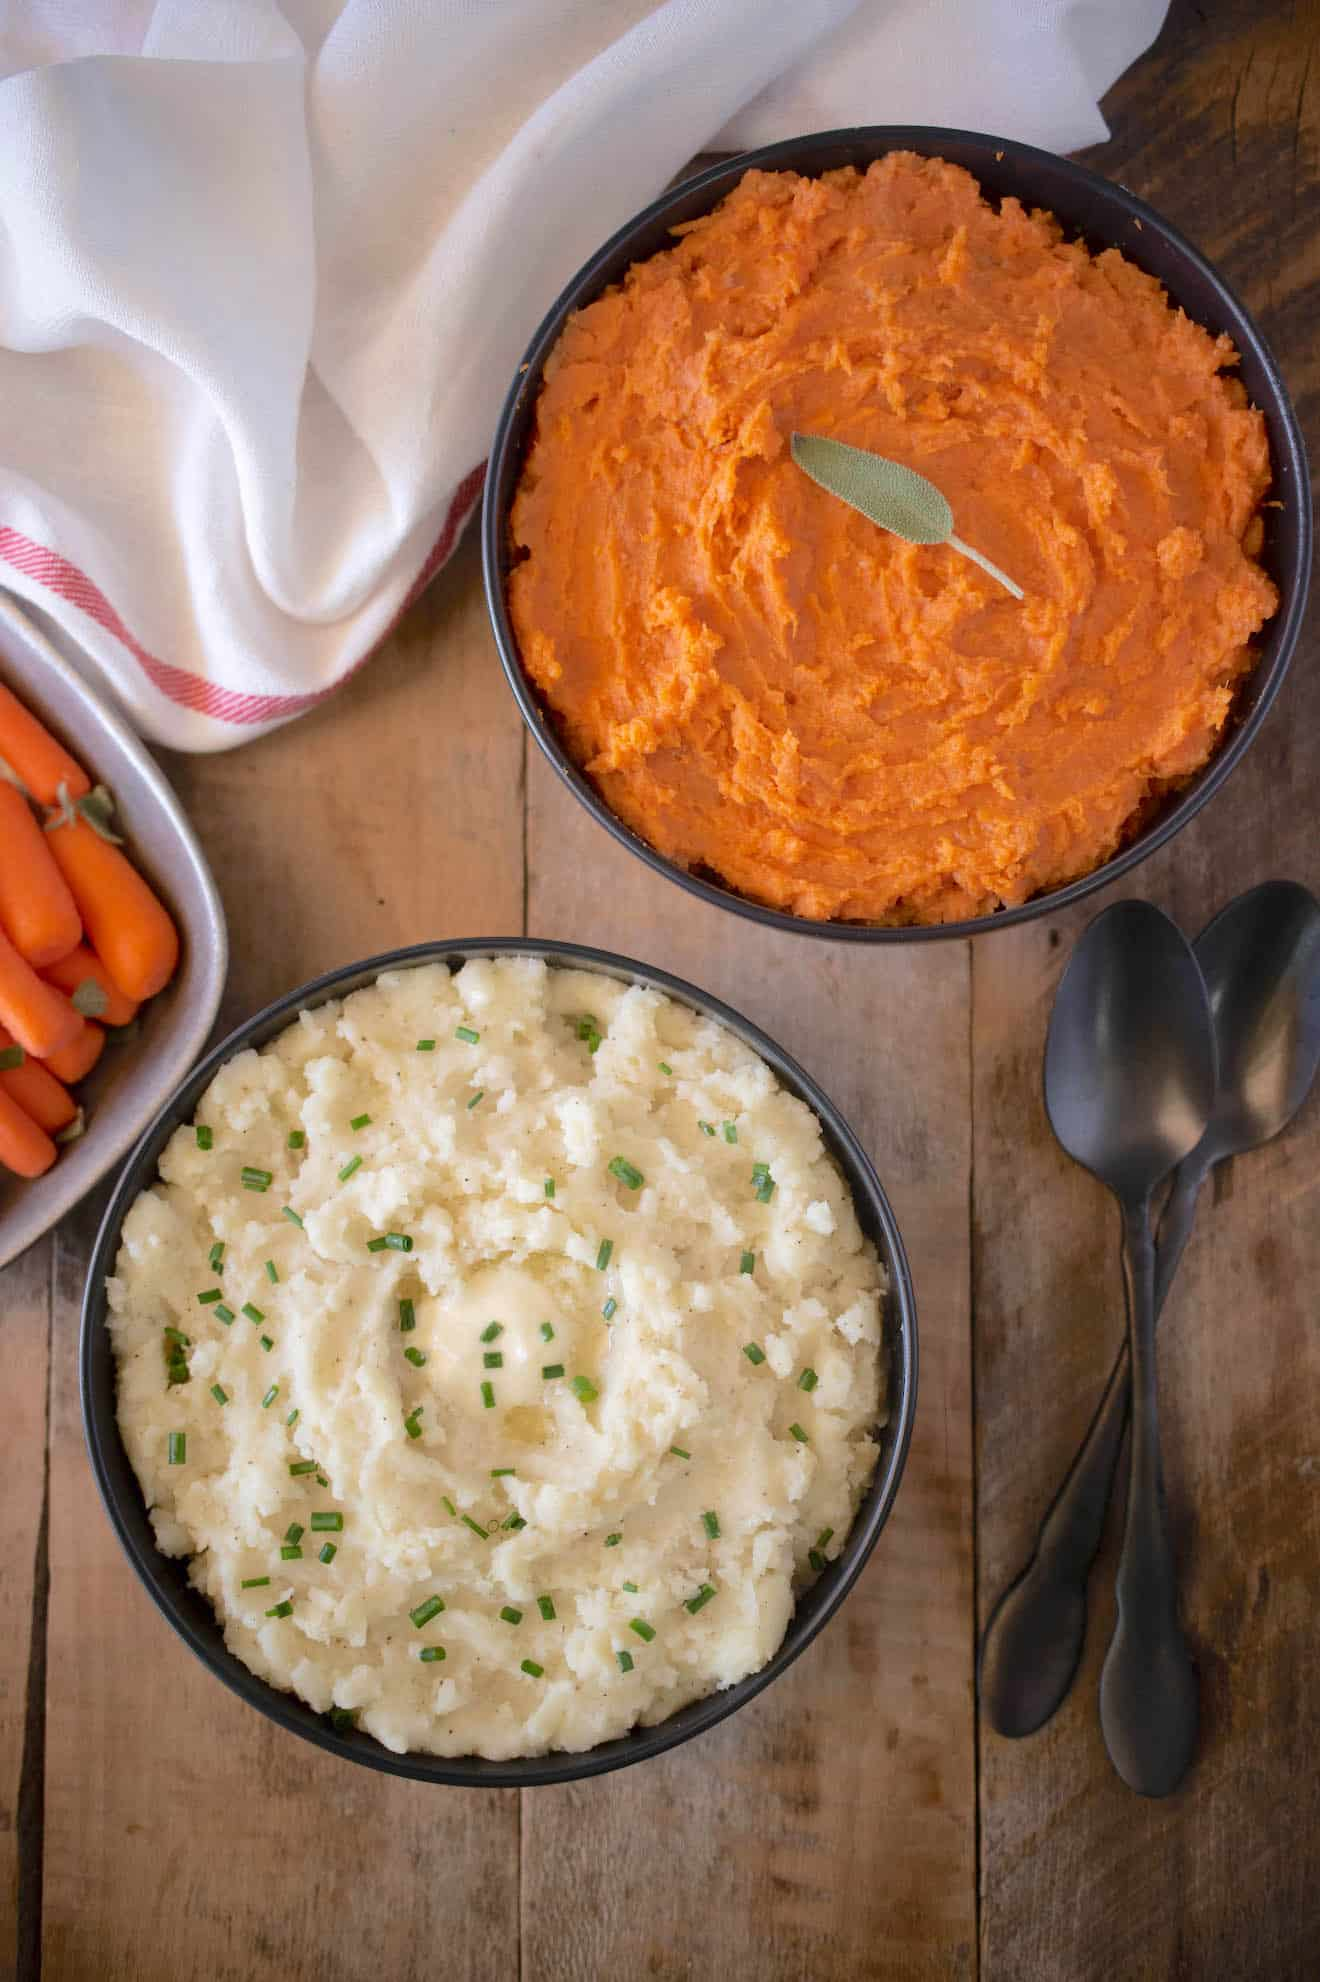 2 bowls of mashed potato, one with regular potatoes and one with yams/sweet potato